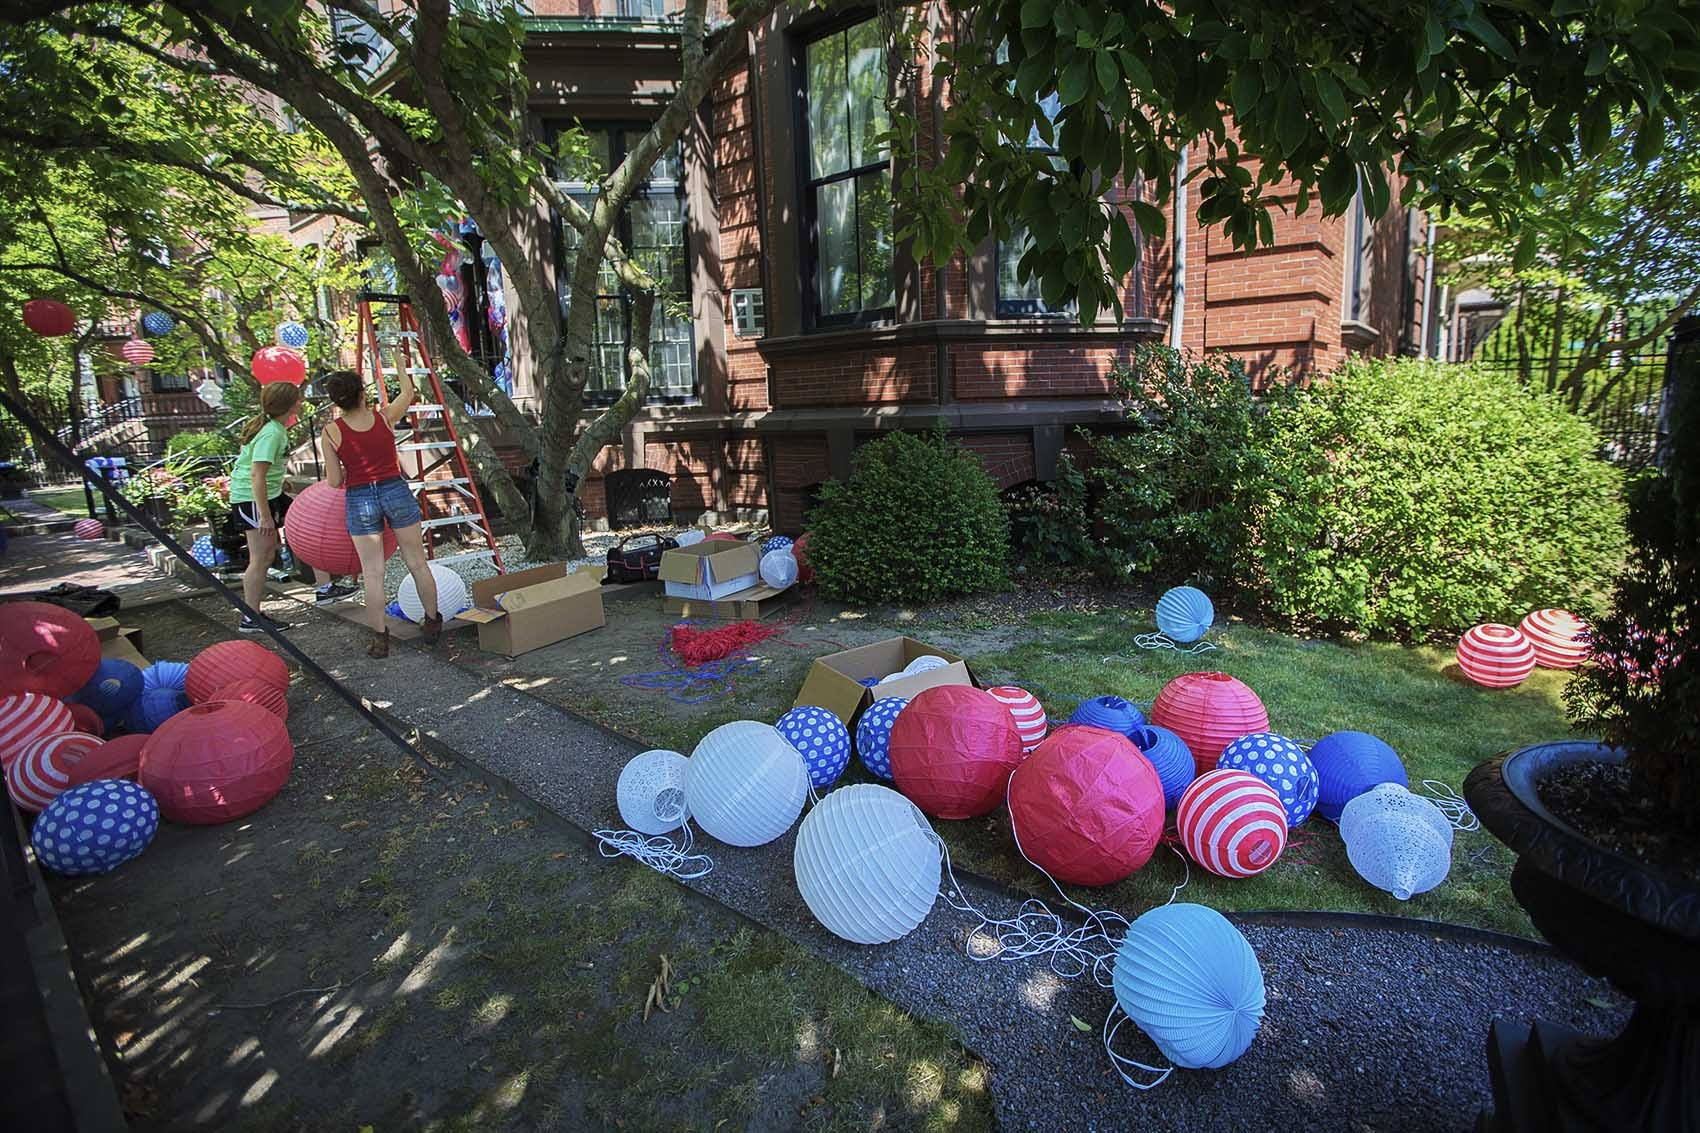 Volunteers set up red, white and blue lanterns for the French Cultural Center's annual Bastille Day celebration on Friday. (Jesse Costa/WBUR)